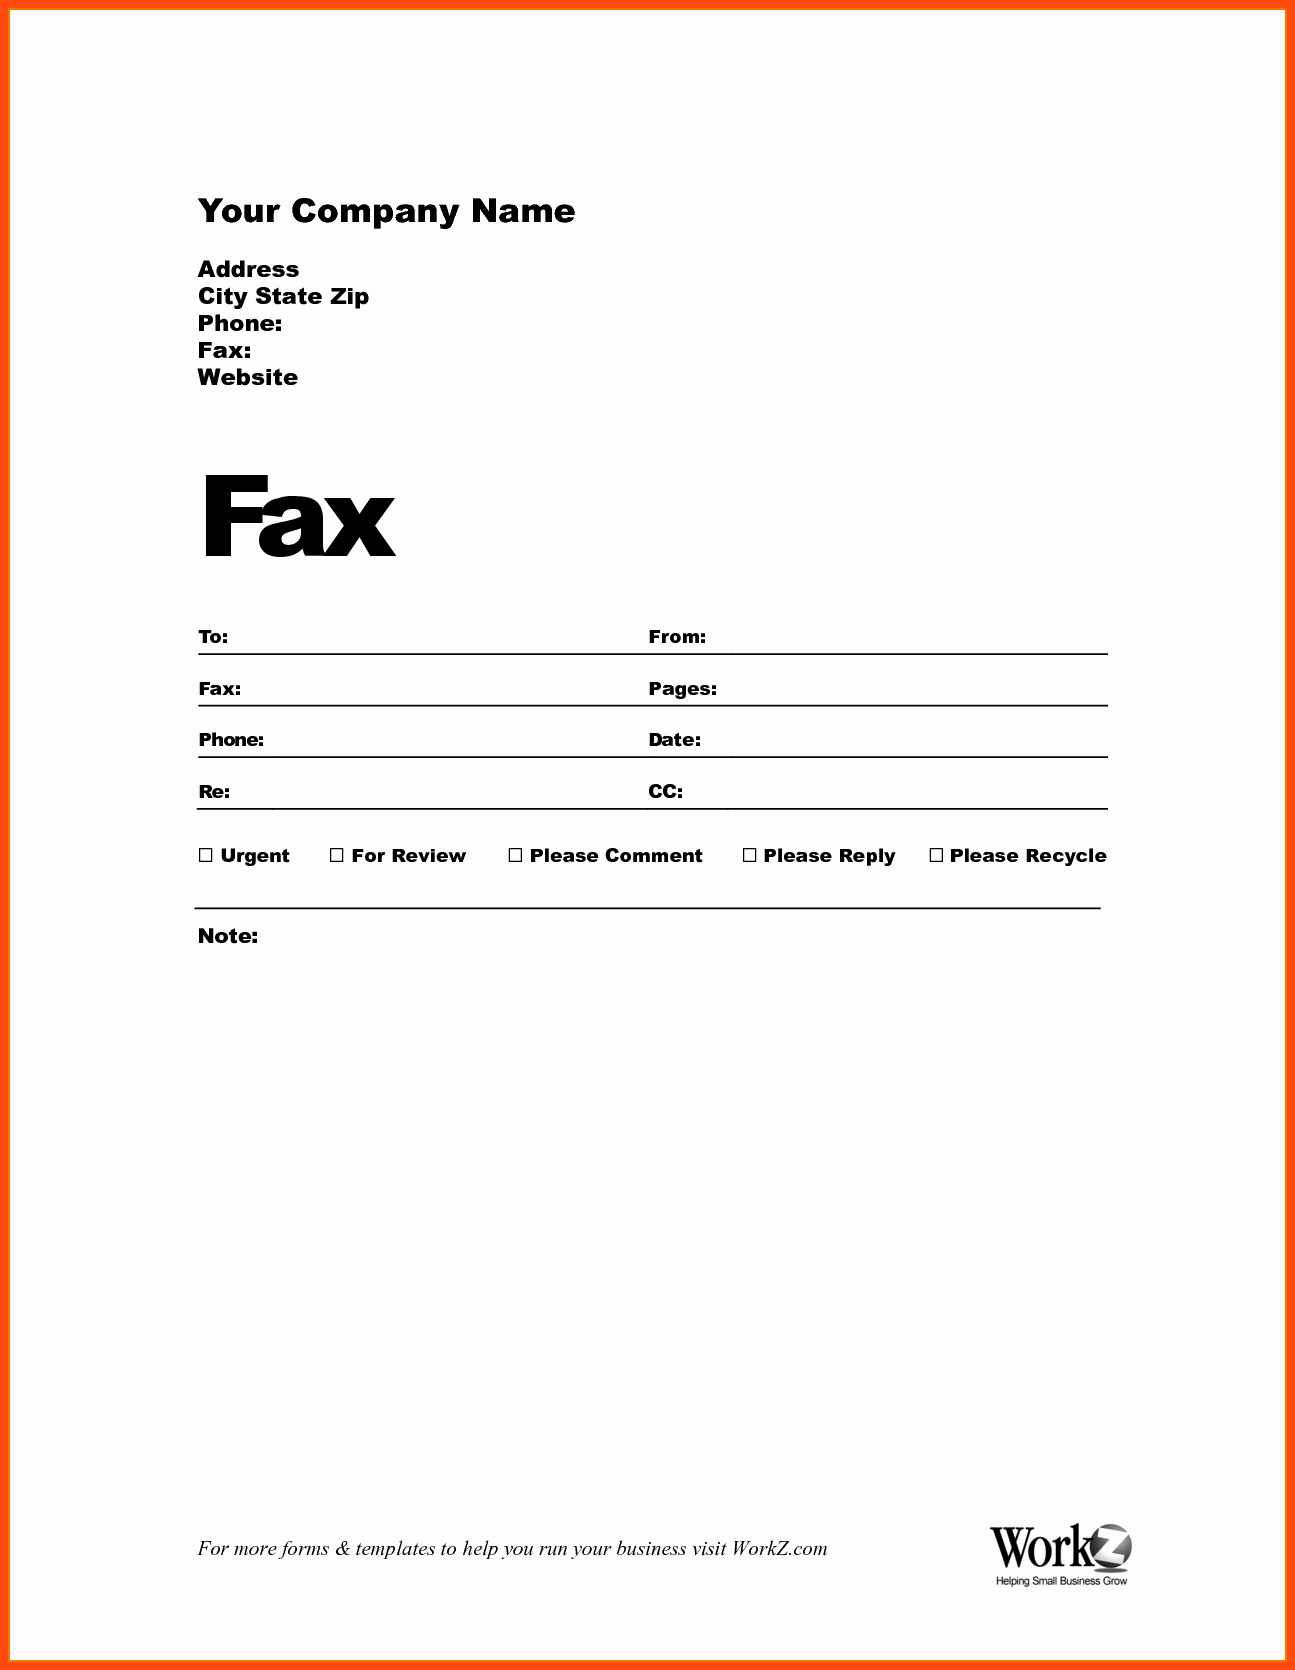 Free Fax Cover Sheets Beautiful How to Fill Out A Fax Cover Sheet